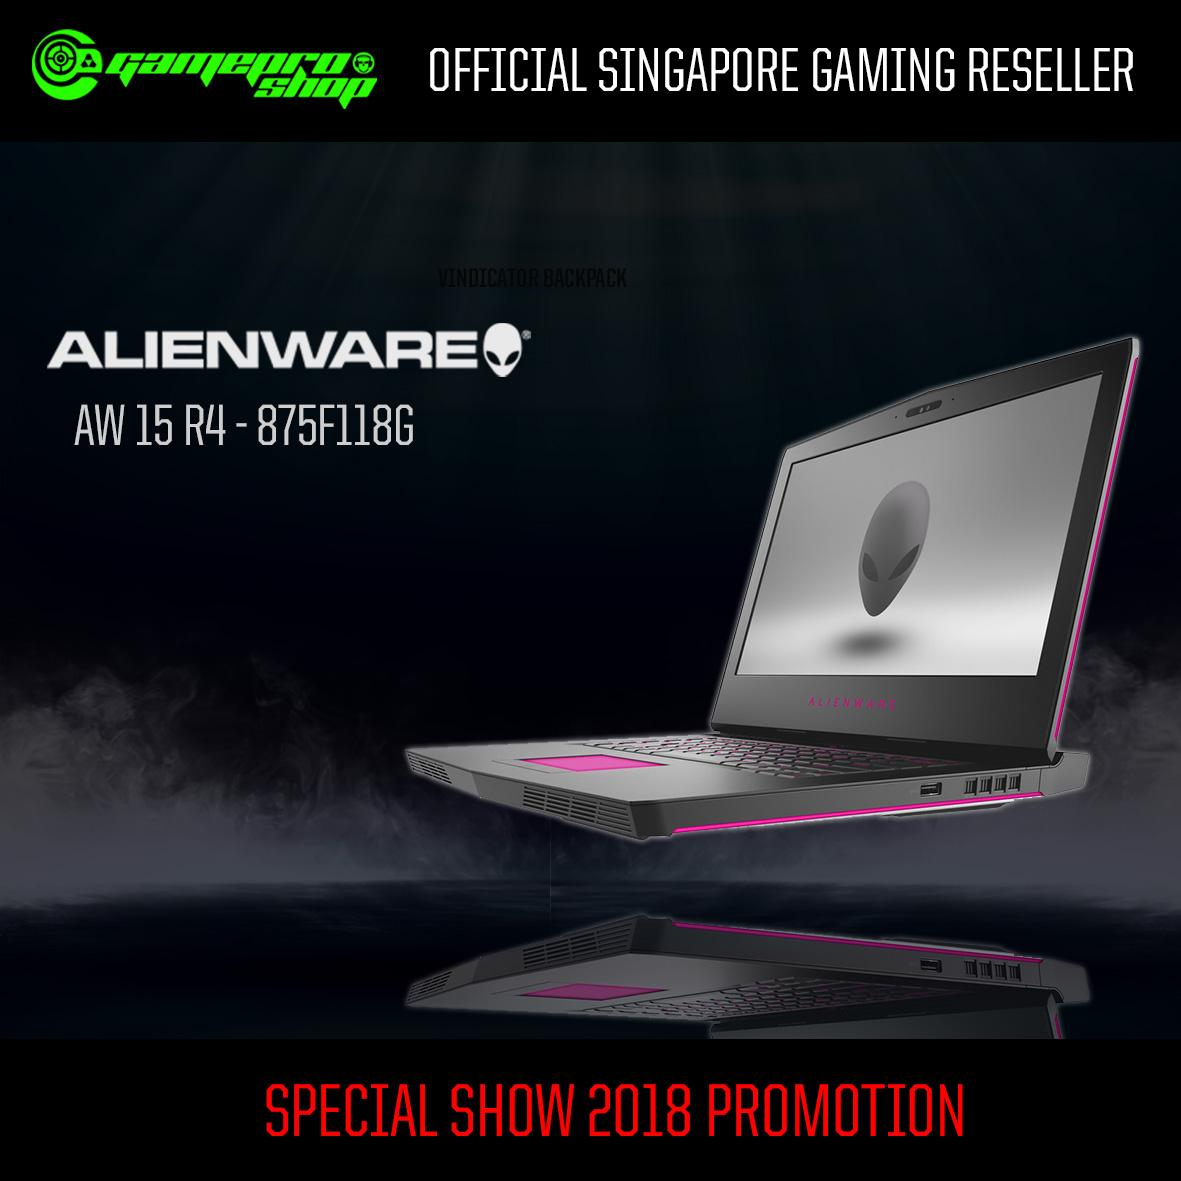 Alienware AW15 R4 -875F118G-W10-1070 ( i7-8750H/ 16GB/ 256GB SSD +1TB/ NVIDIA GTX 1070/ 15.6″ FHD/ Win10/2 year Premium Support) with 120Hz *10.10 PROMO*